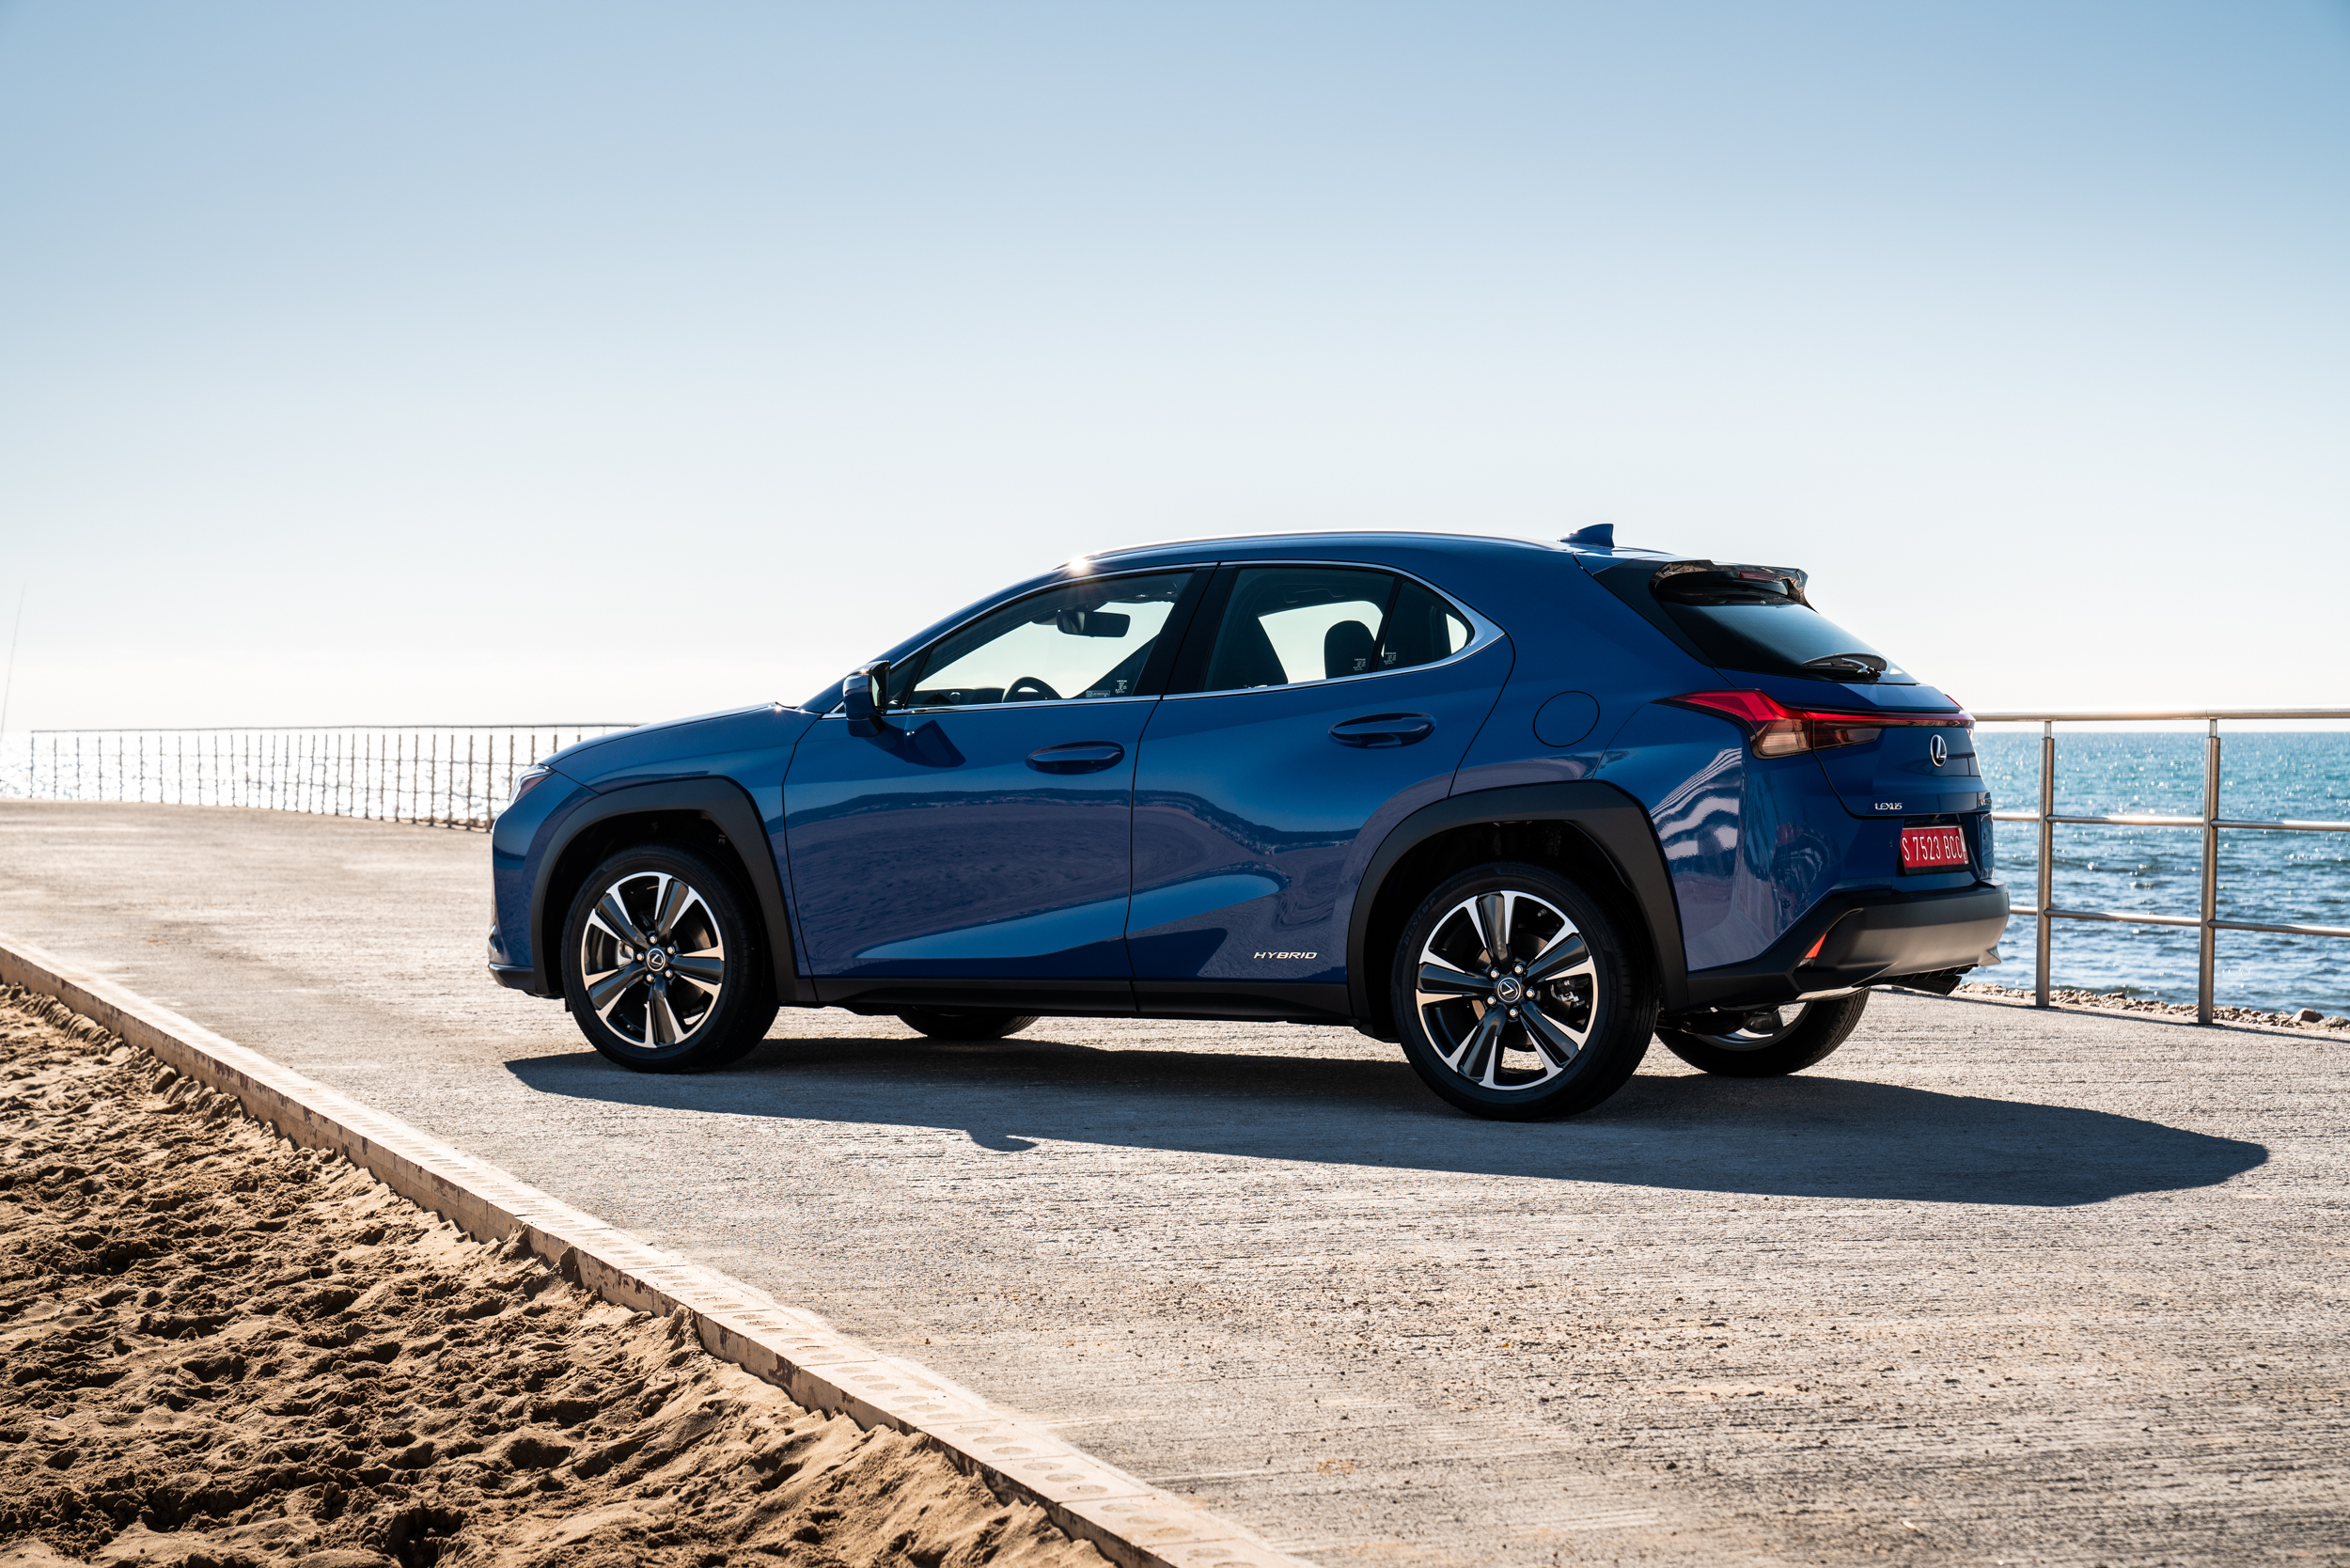 nuova-lexus-ux-ibrida-milano-design-week-2019